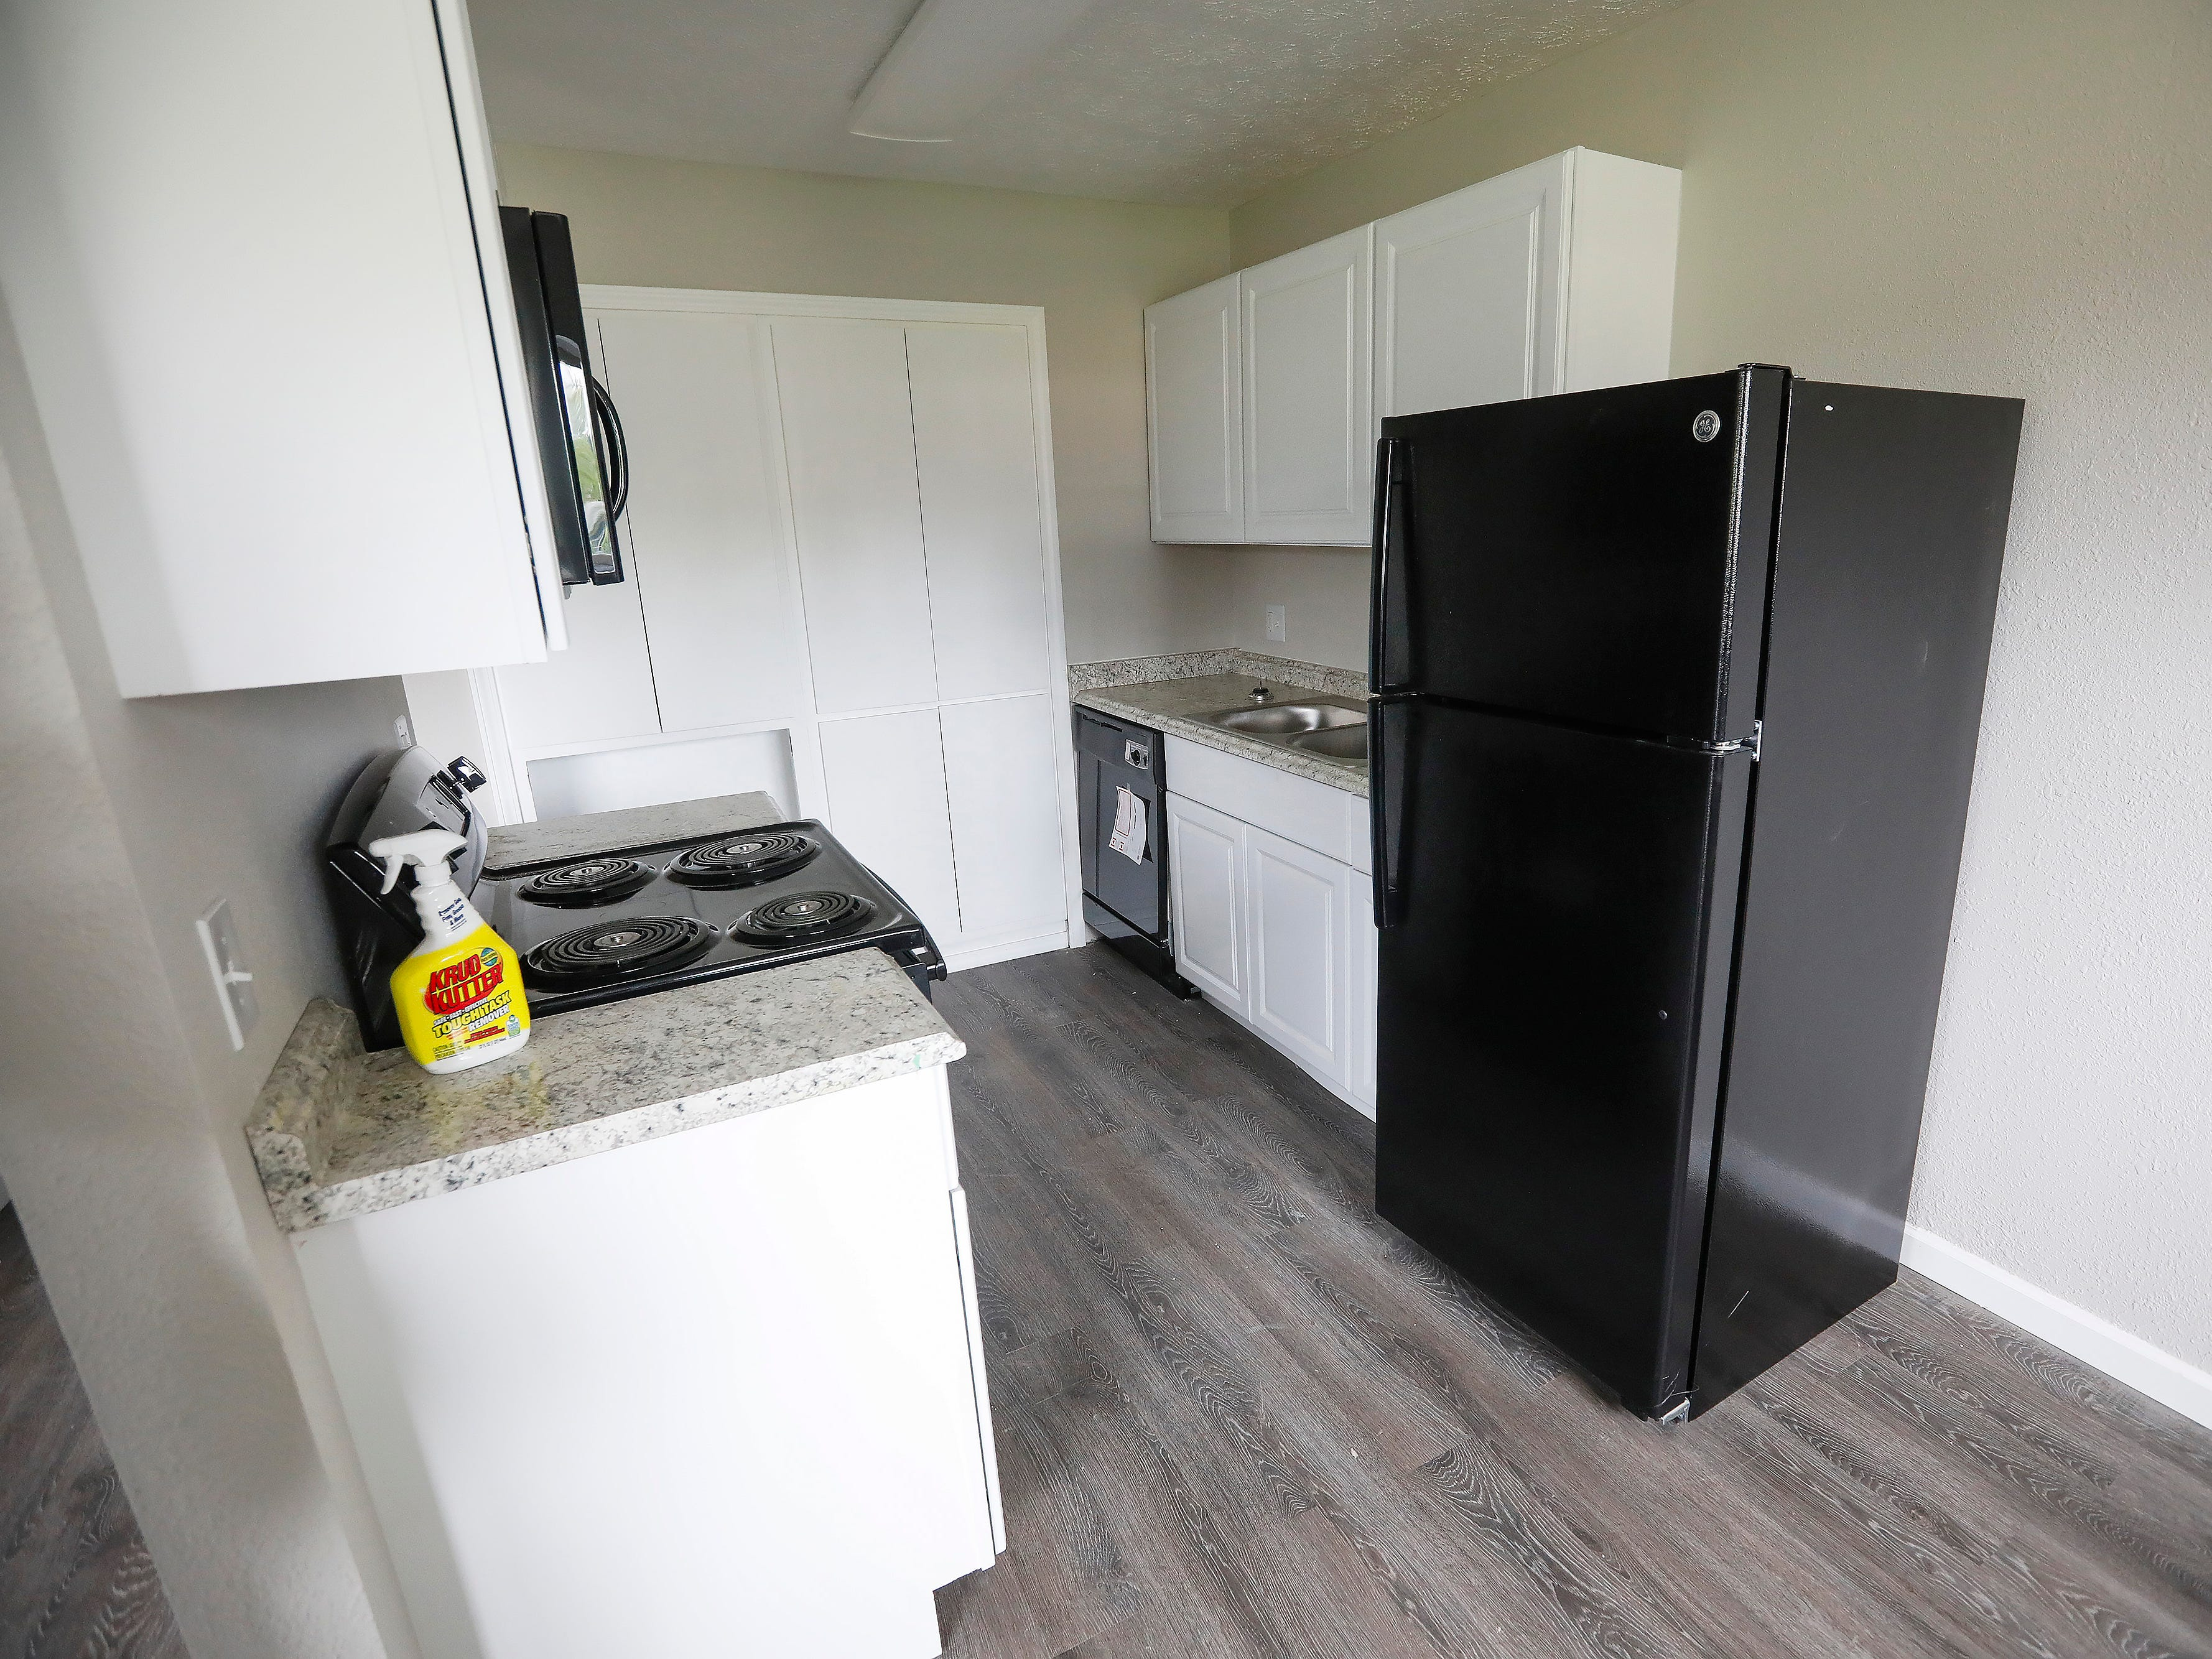 The renovated kitchen in an apartment at 2107 E Cherry St. Major renovations of the former Chris Gatley property are being done by the new owner.